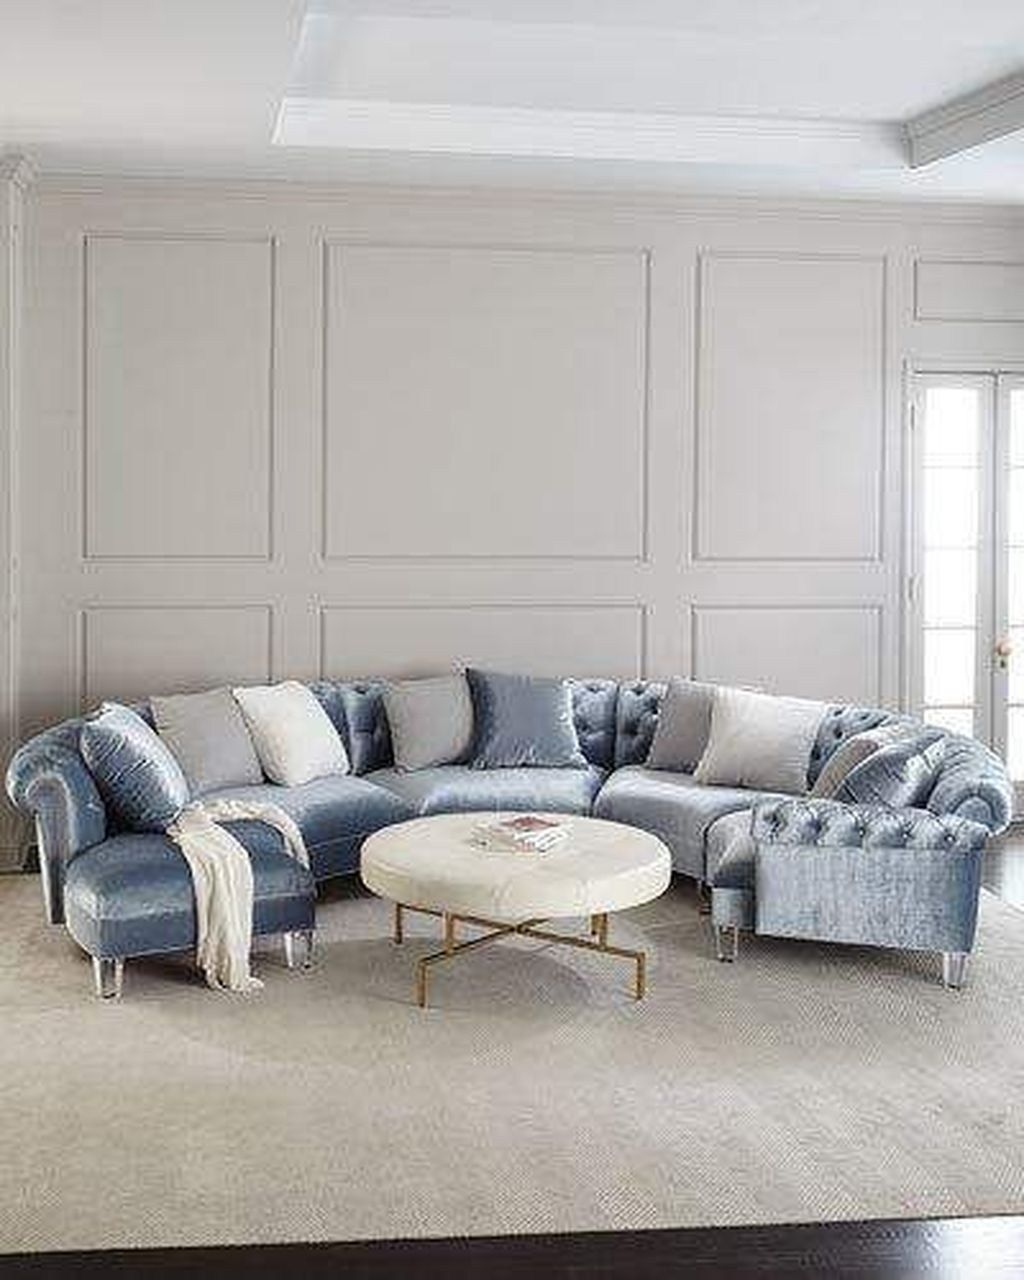 IdeasLiving Curved Designs Sectional Sofa Room 20Amazing PnwO8k0